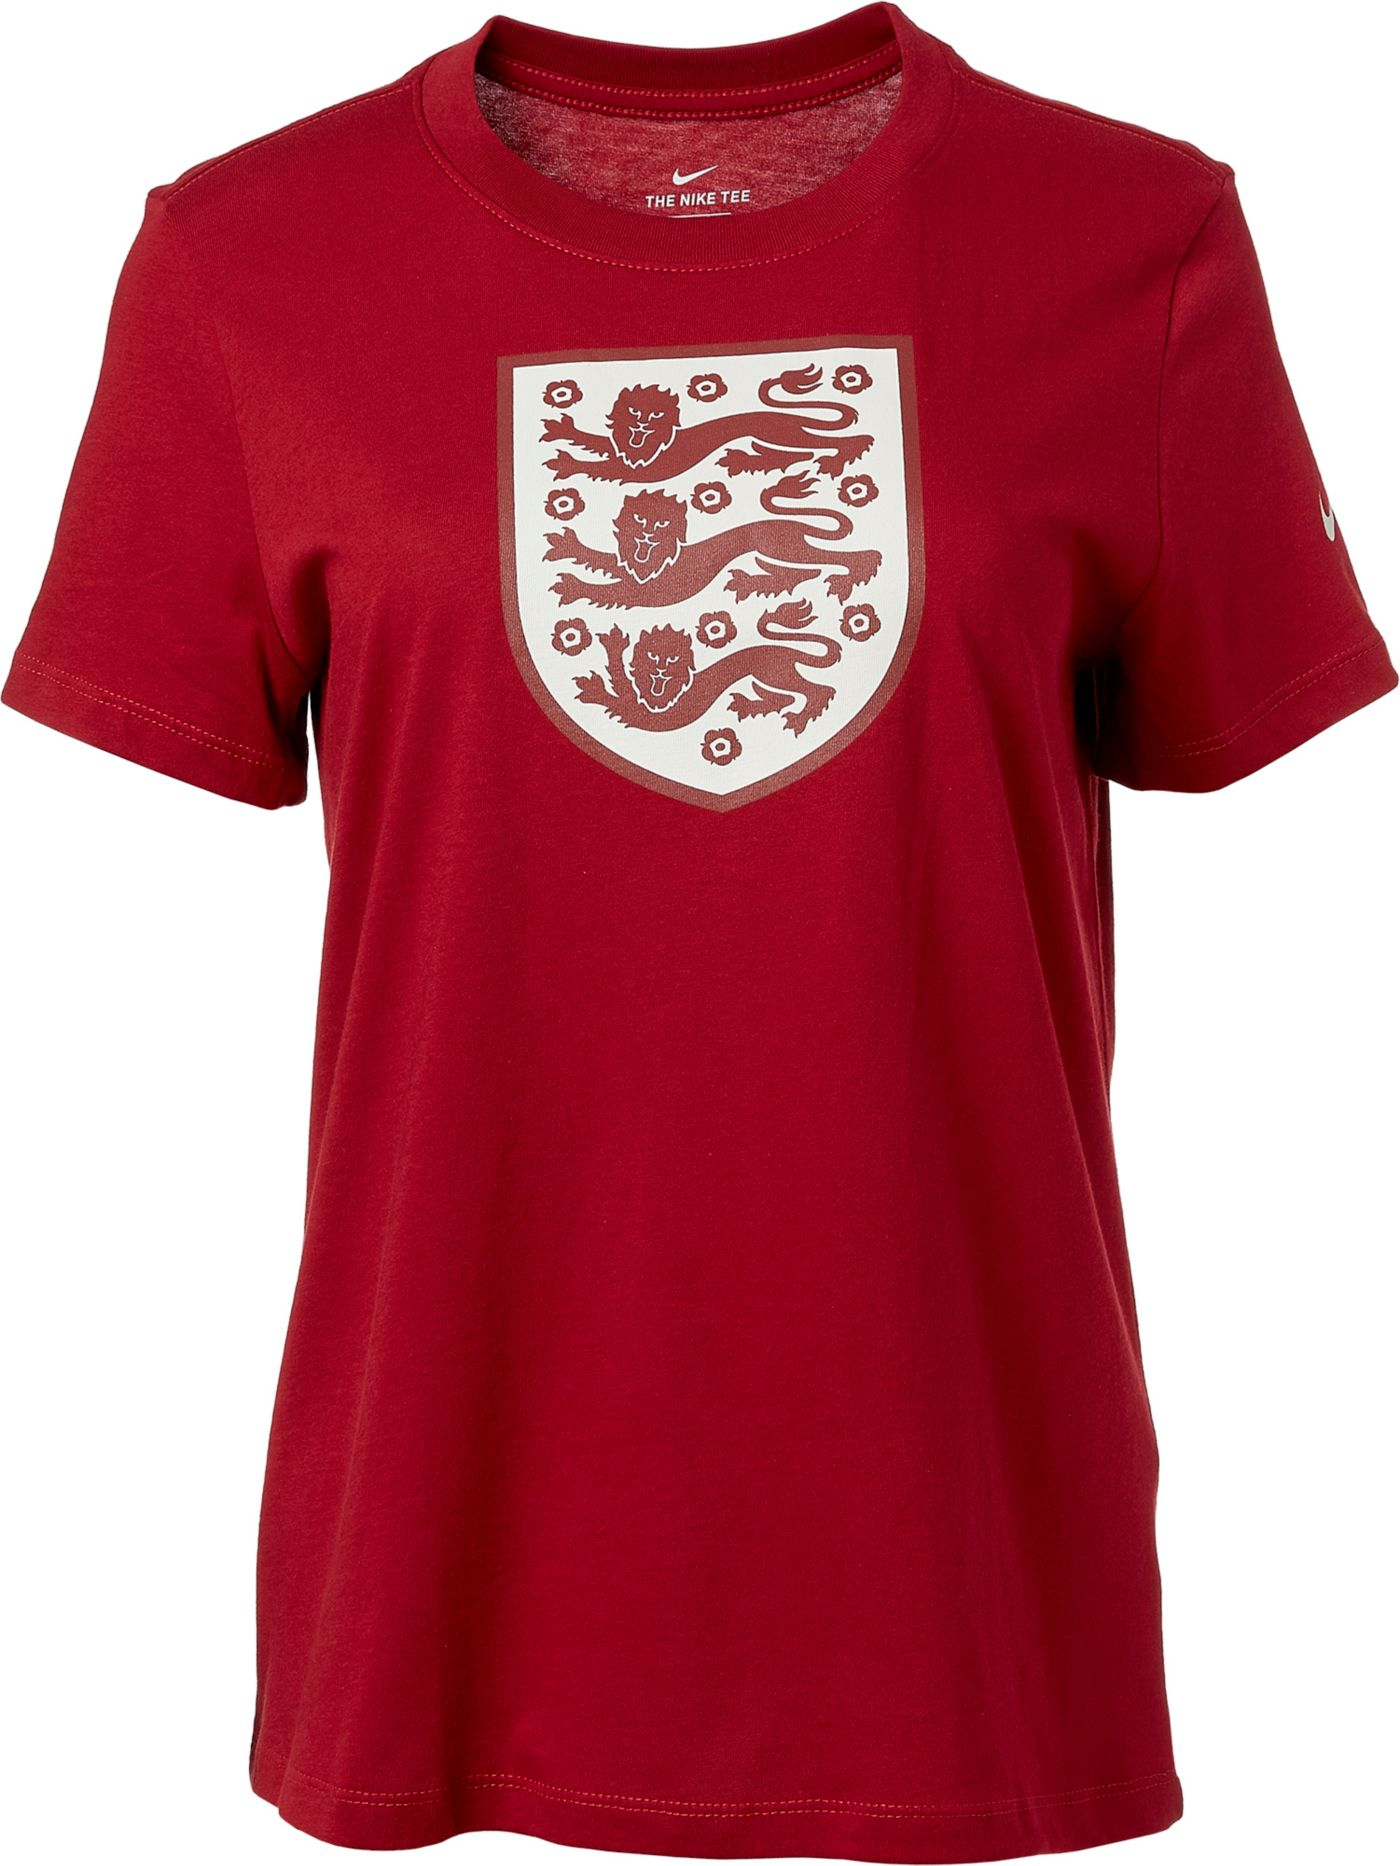 Nike Women's 2019 FIFA Women's World Cup England Crest Red T-Shirt